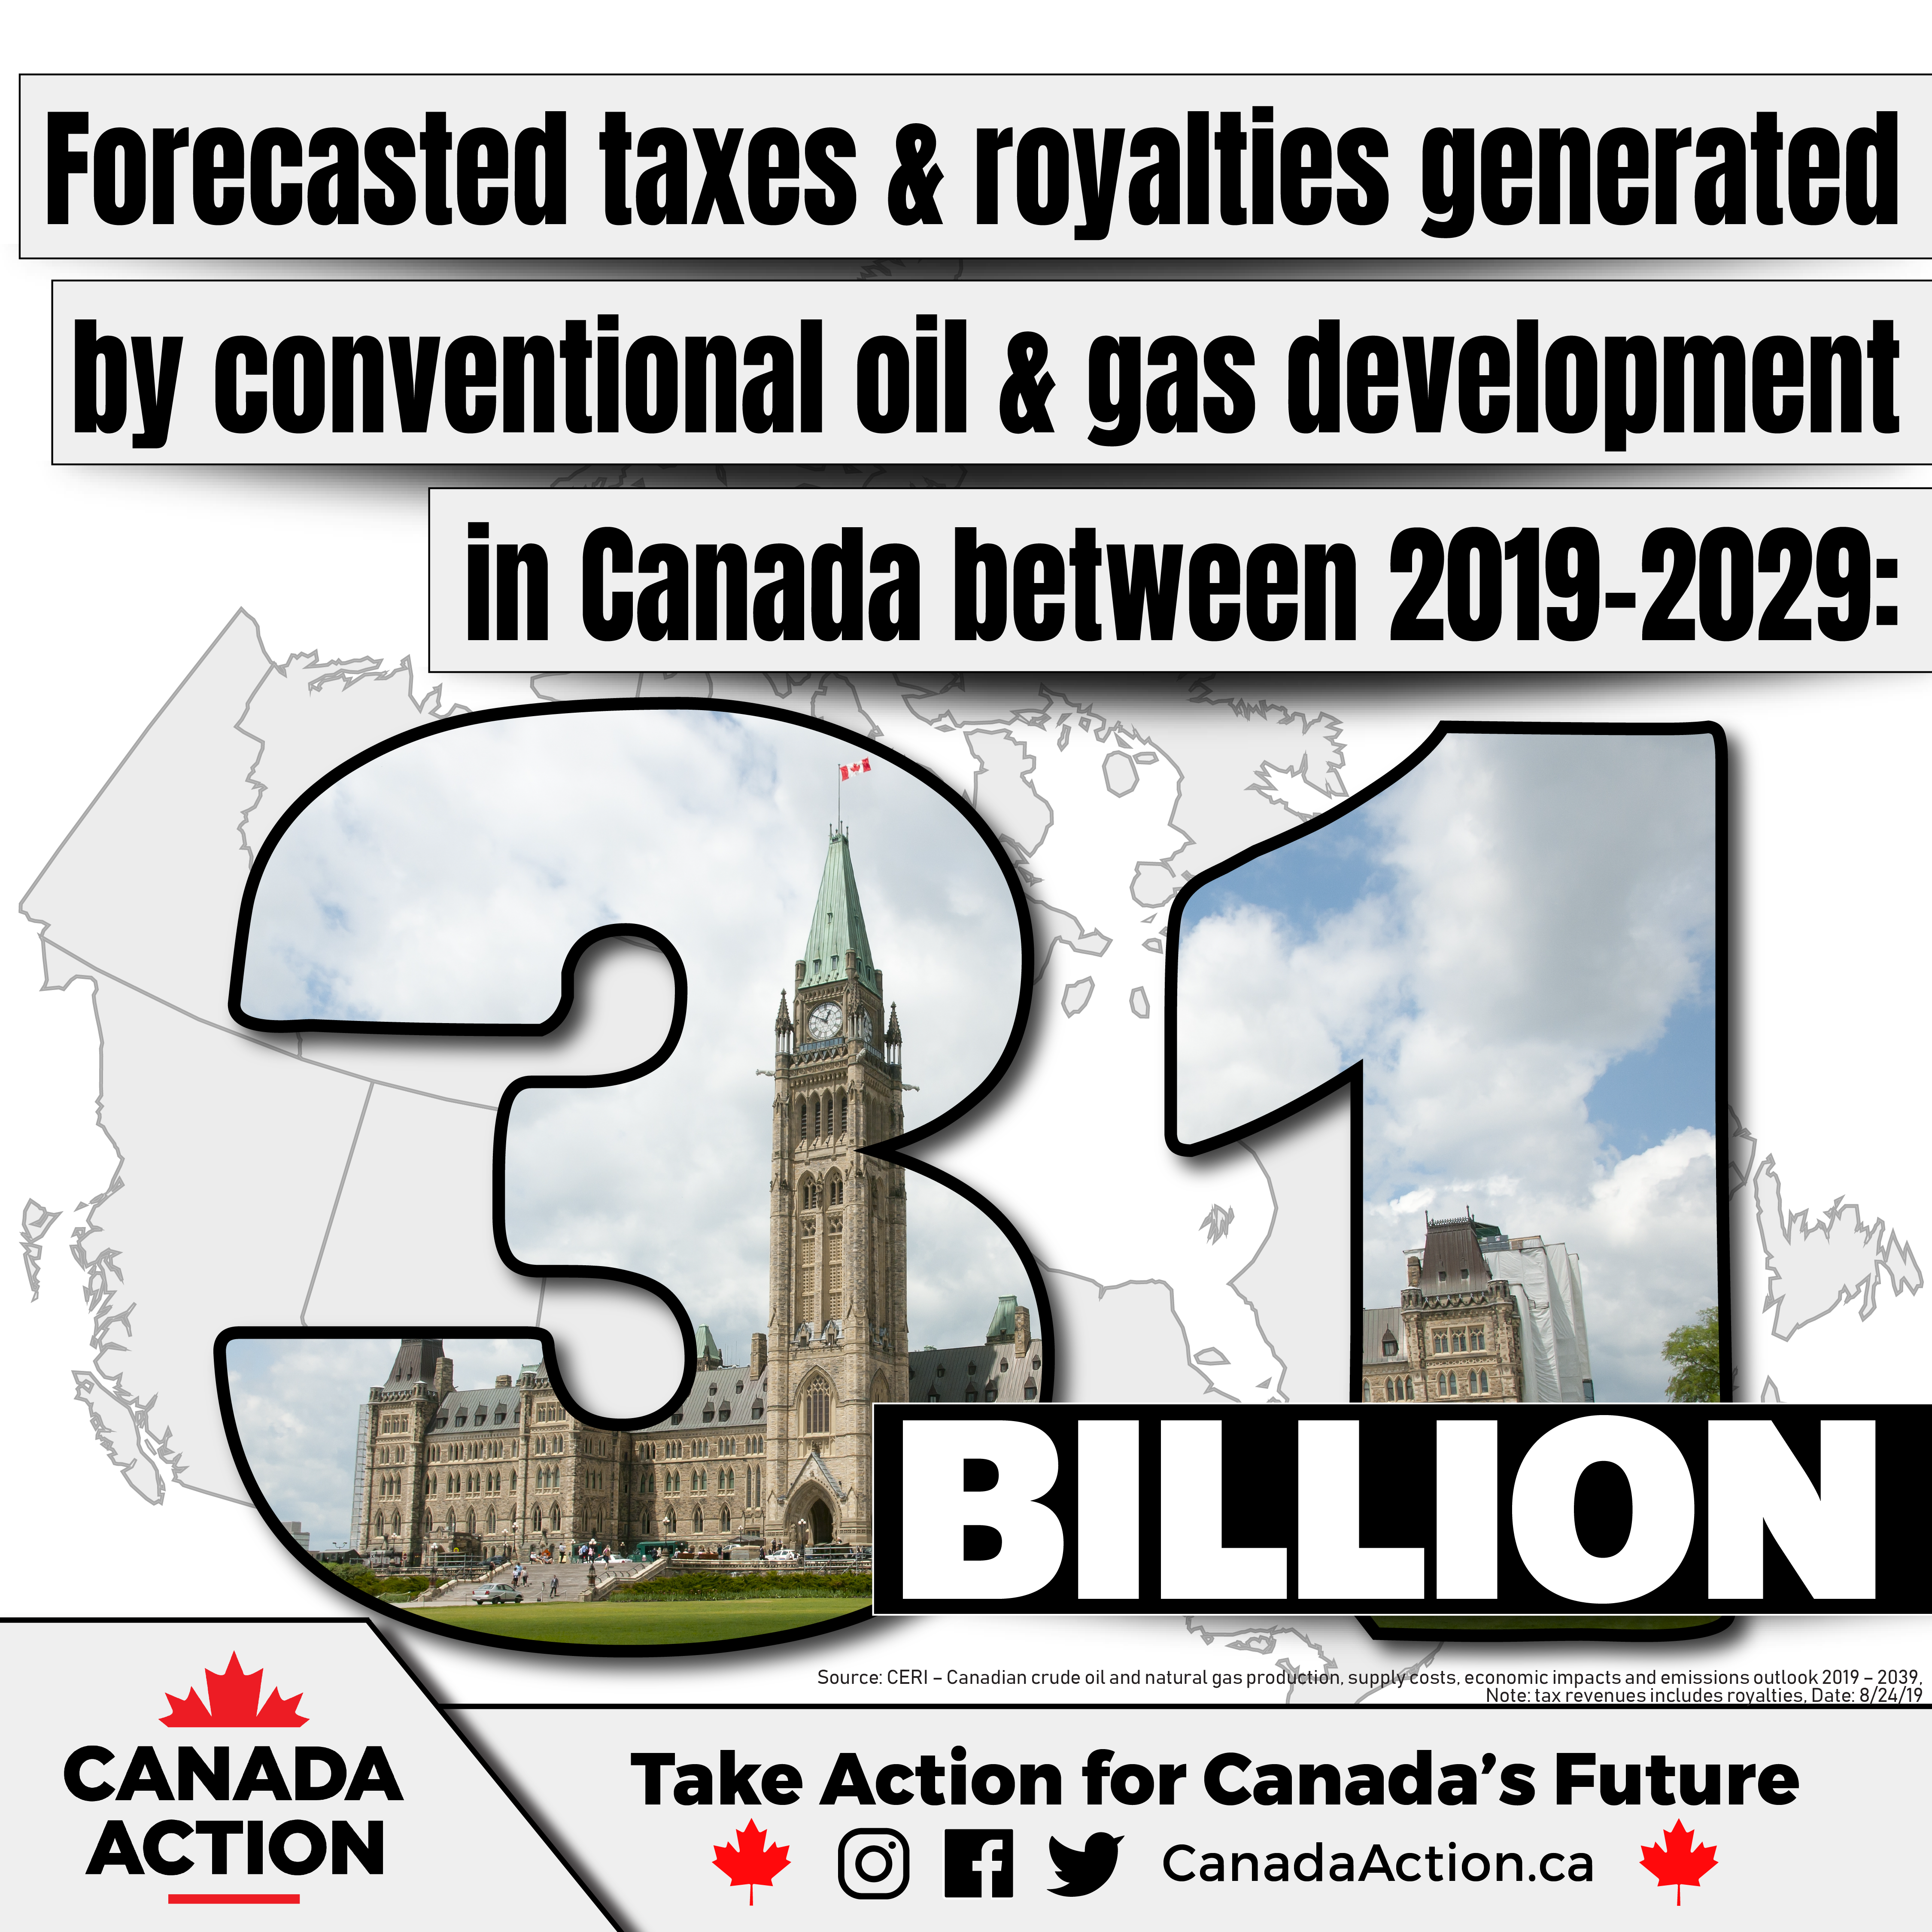 Canada's oil and gas industry will contribute $31.4 billion to government revenues between 2019-2029